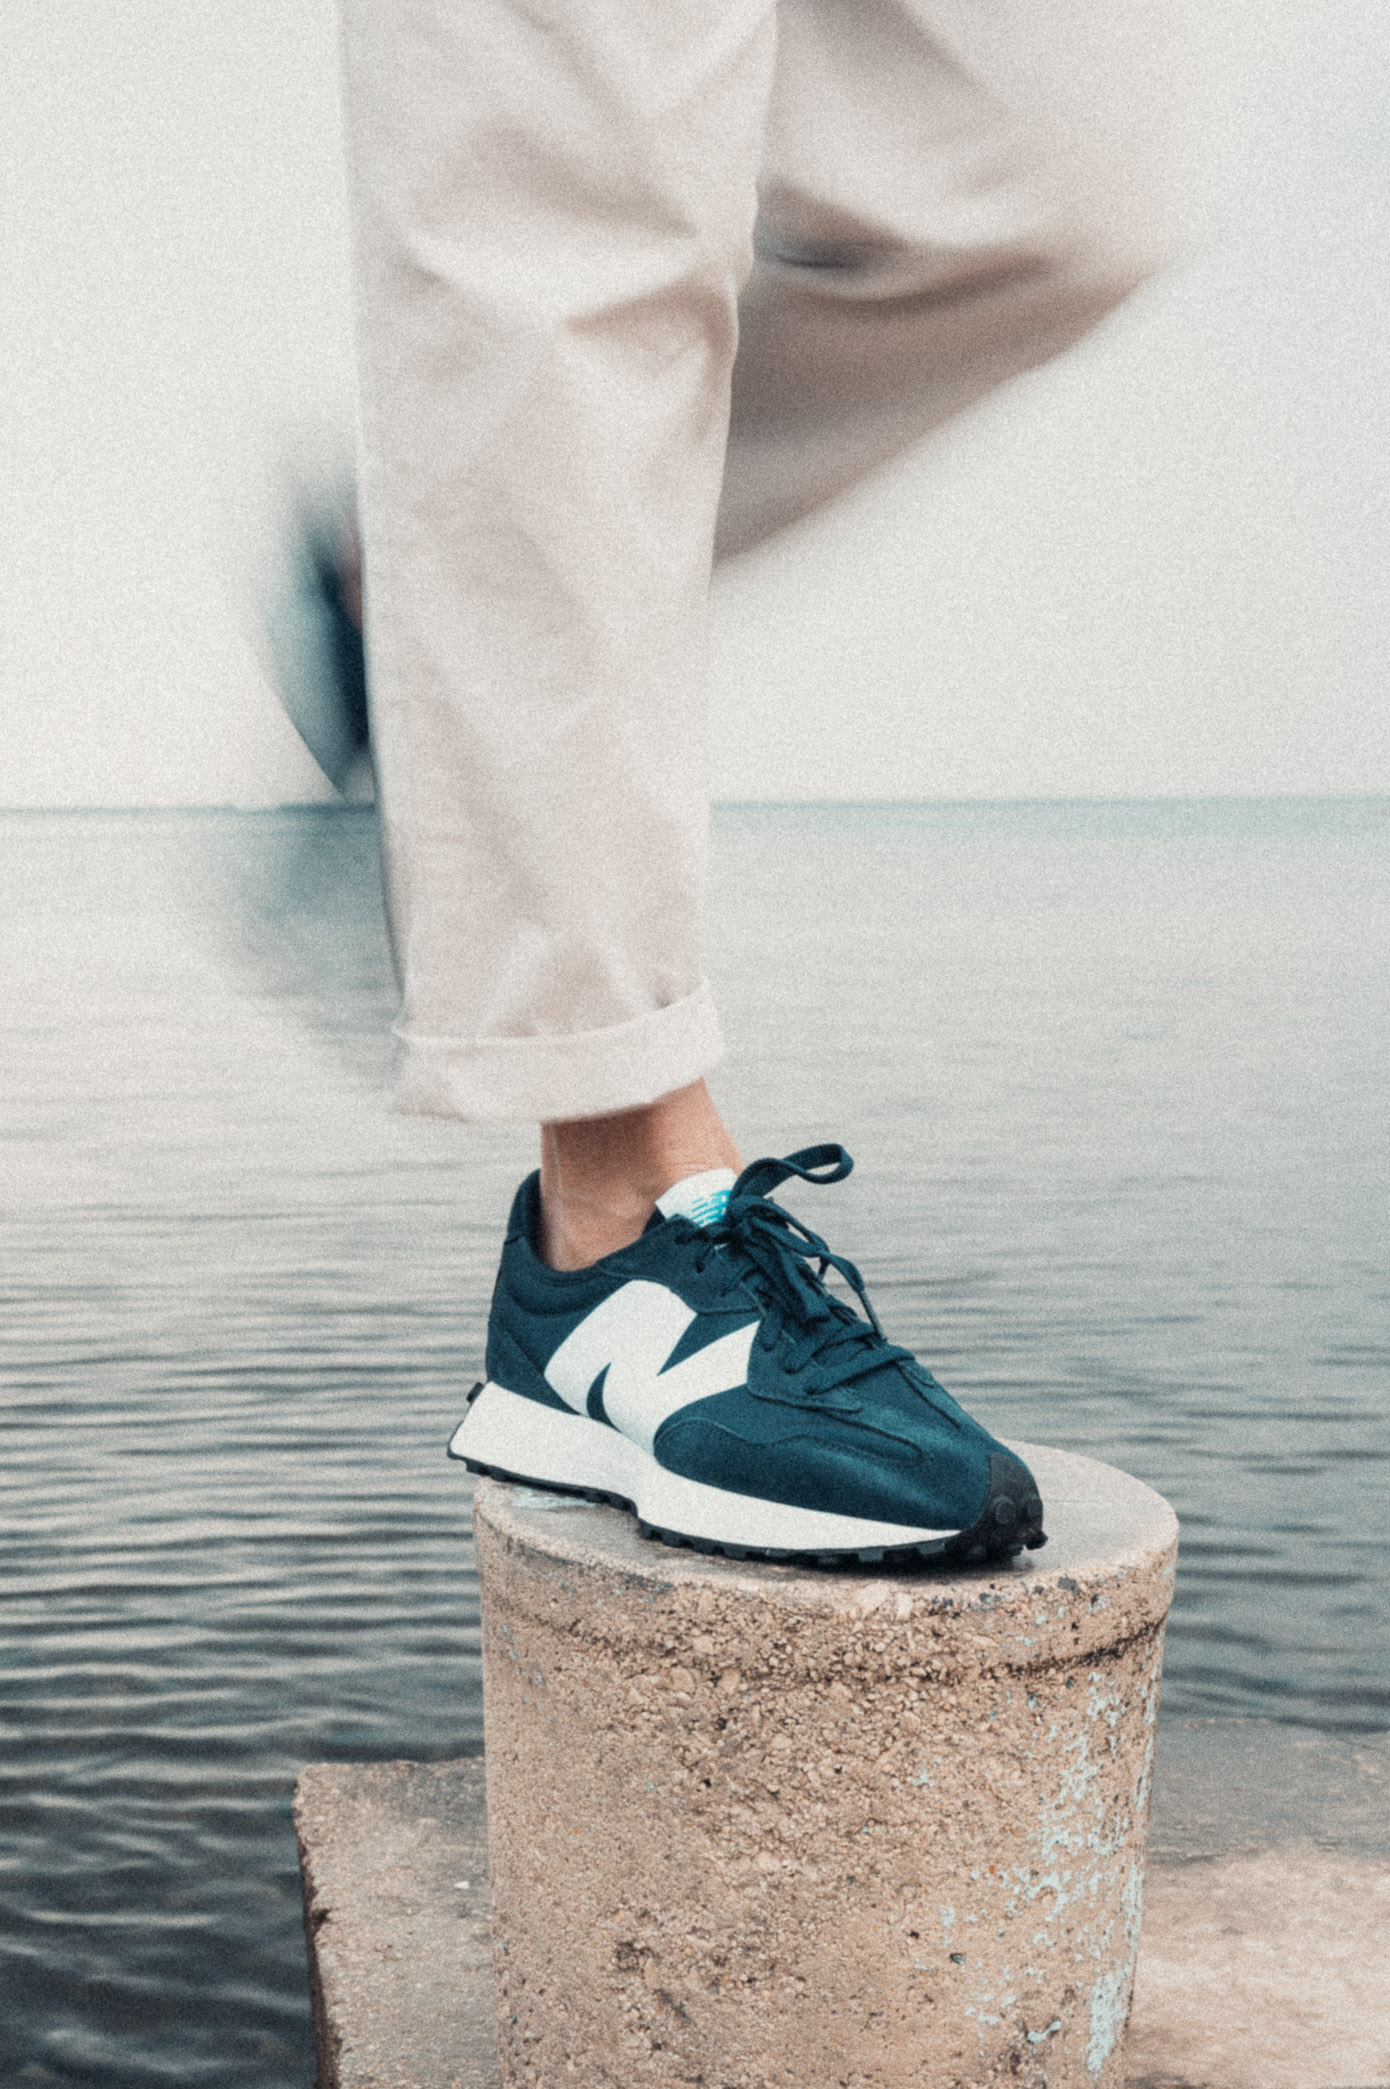 Sandro Paris, Acne Studios, New Balances 327